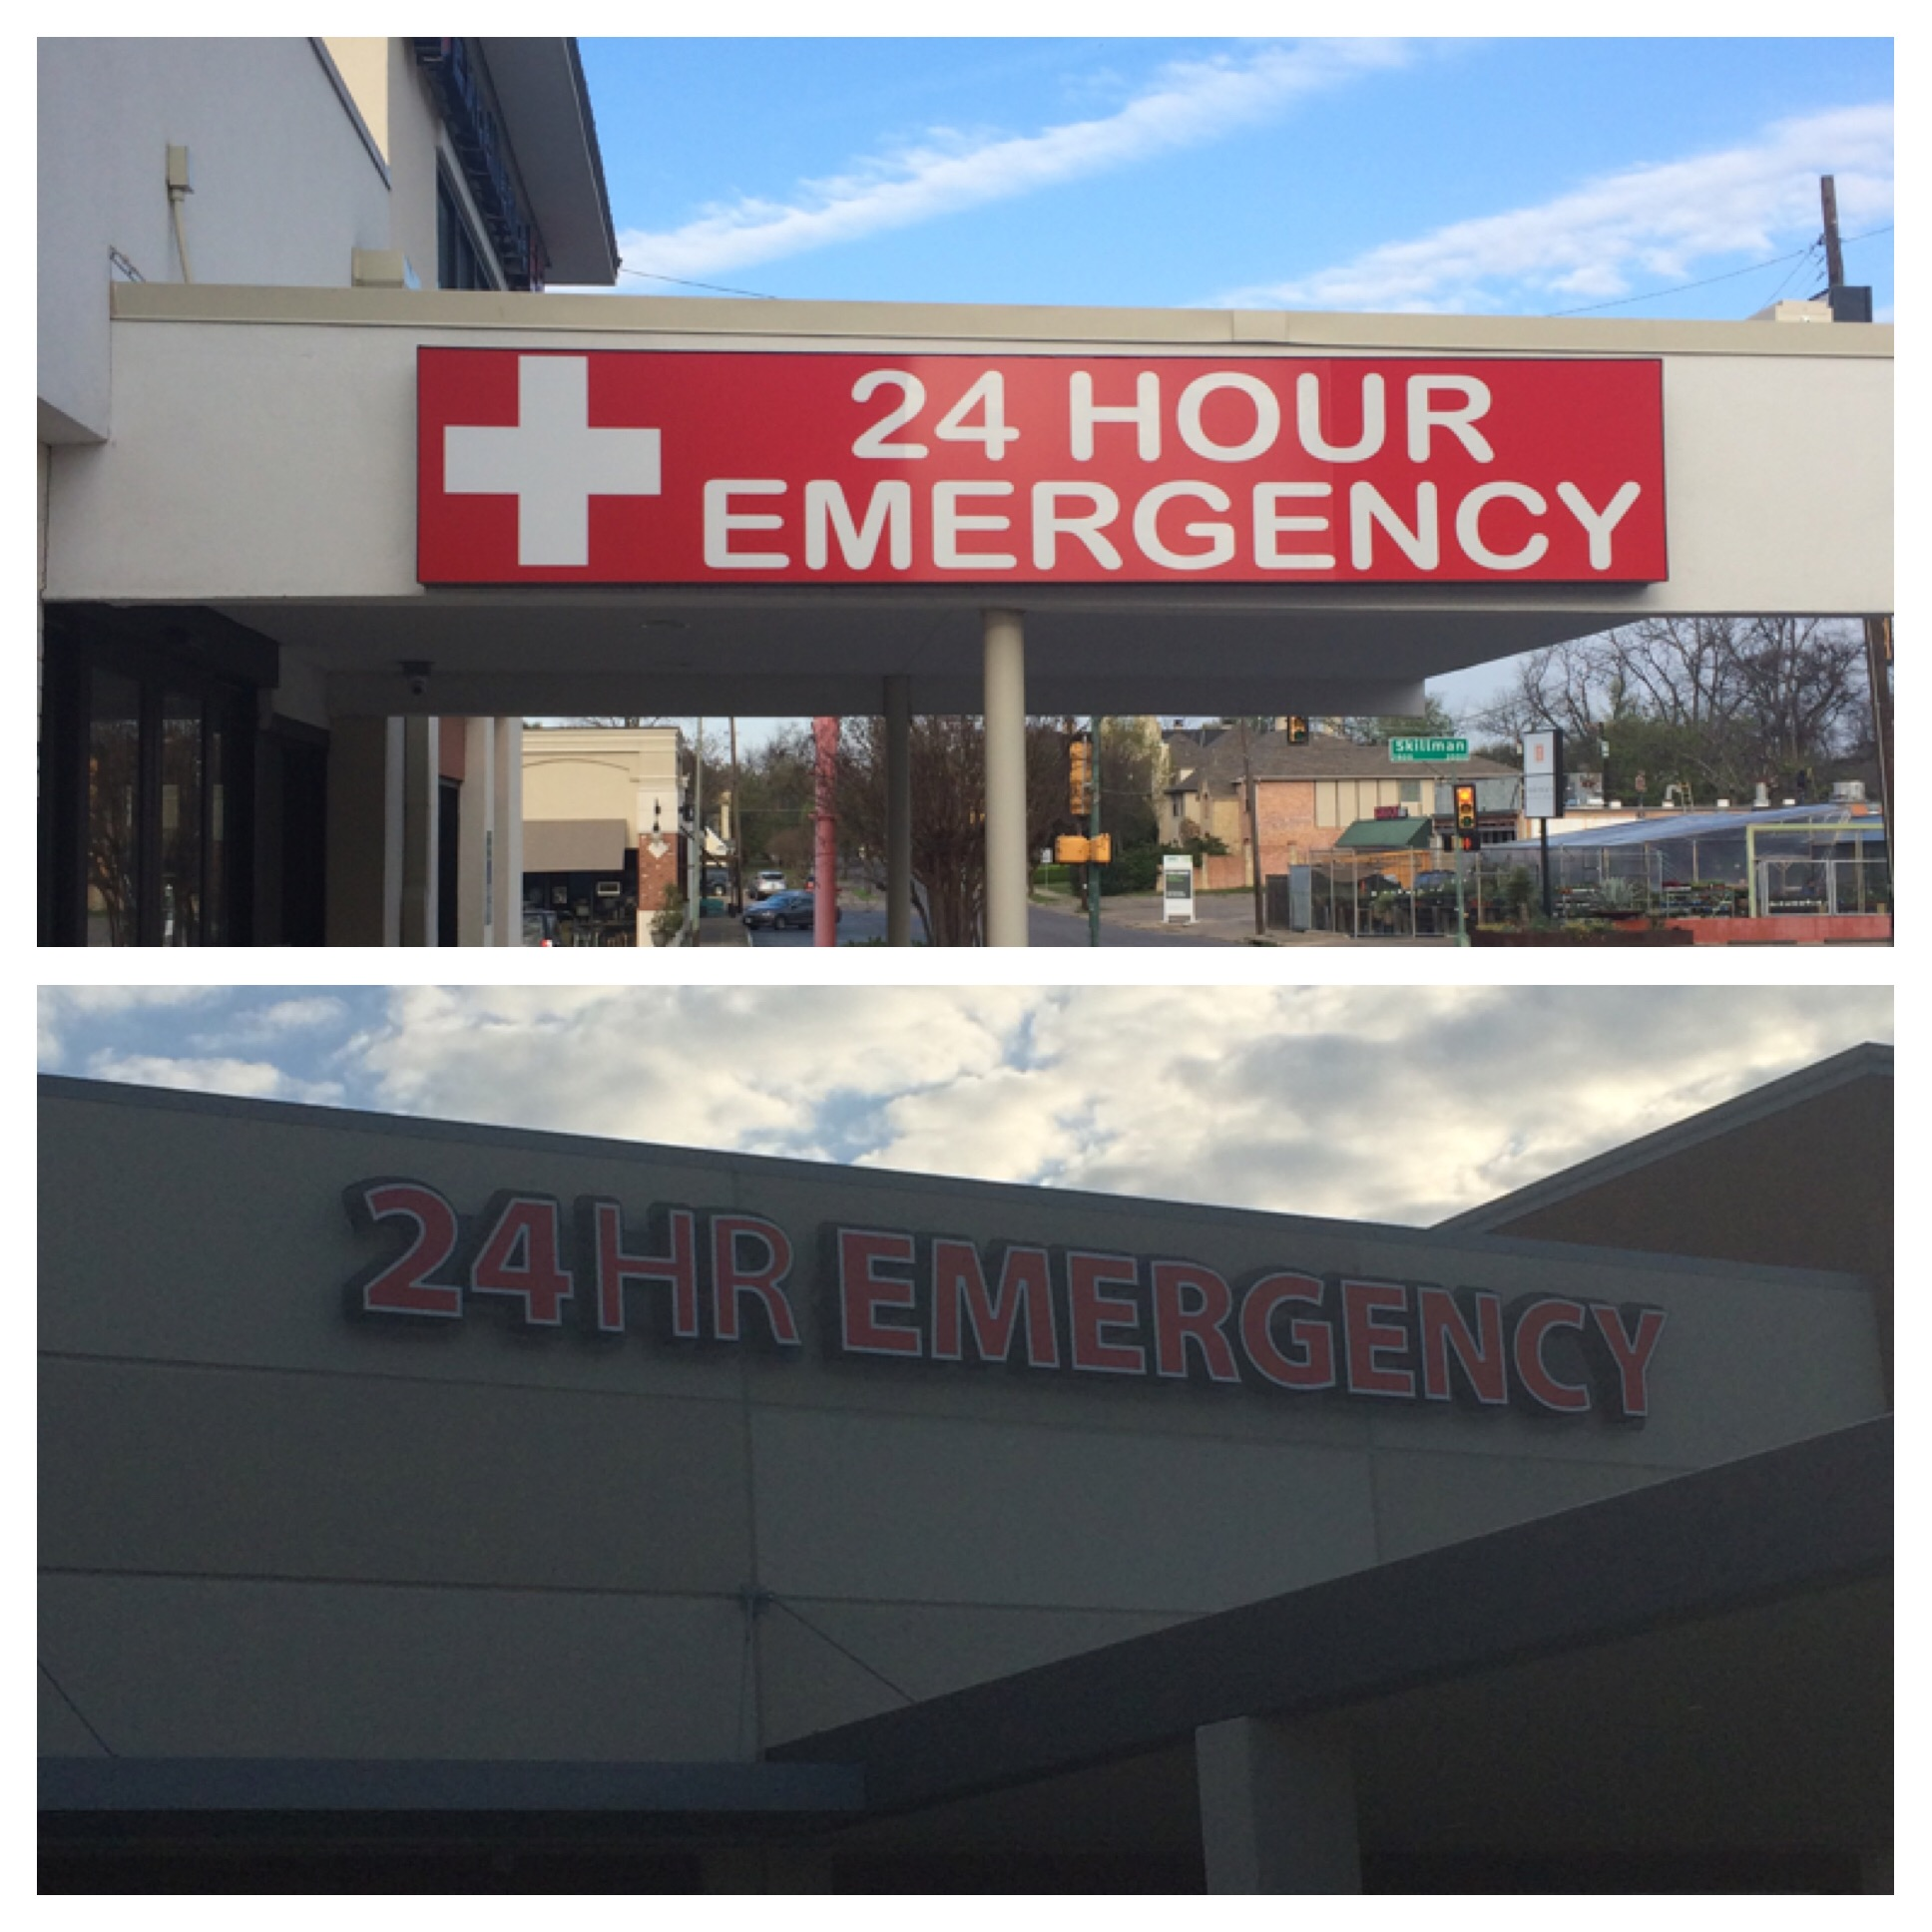 Free-standing emergency rooms have become ubiquitous in East Dallas. Despite outrageous charges and questionable marketing, one contractor benefitted from the over-saturation.